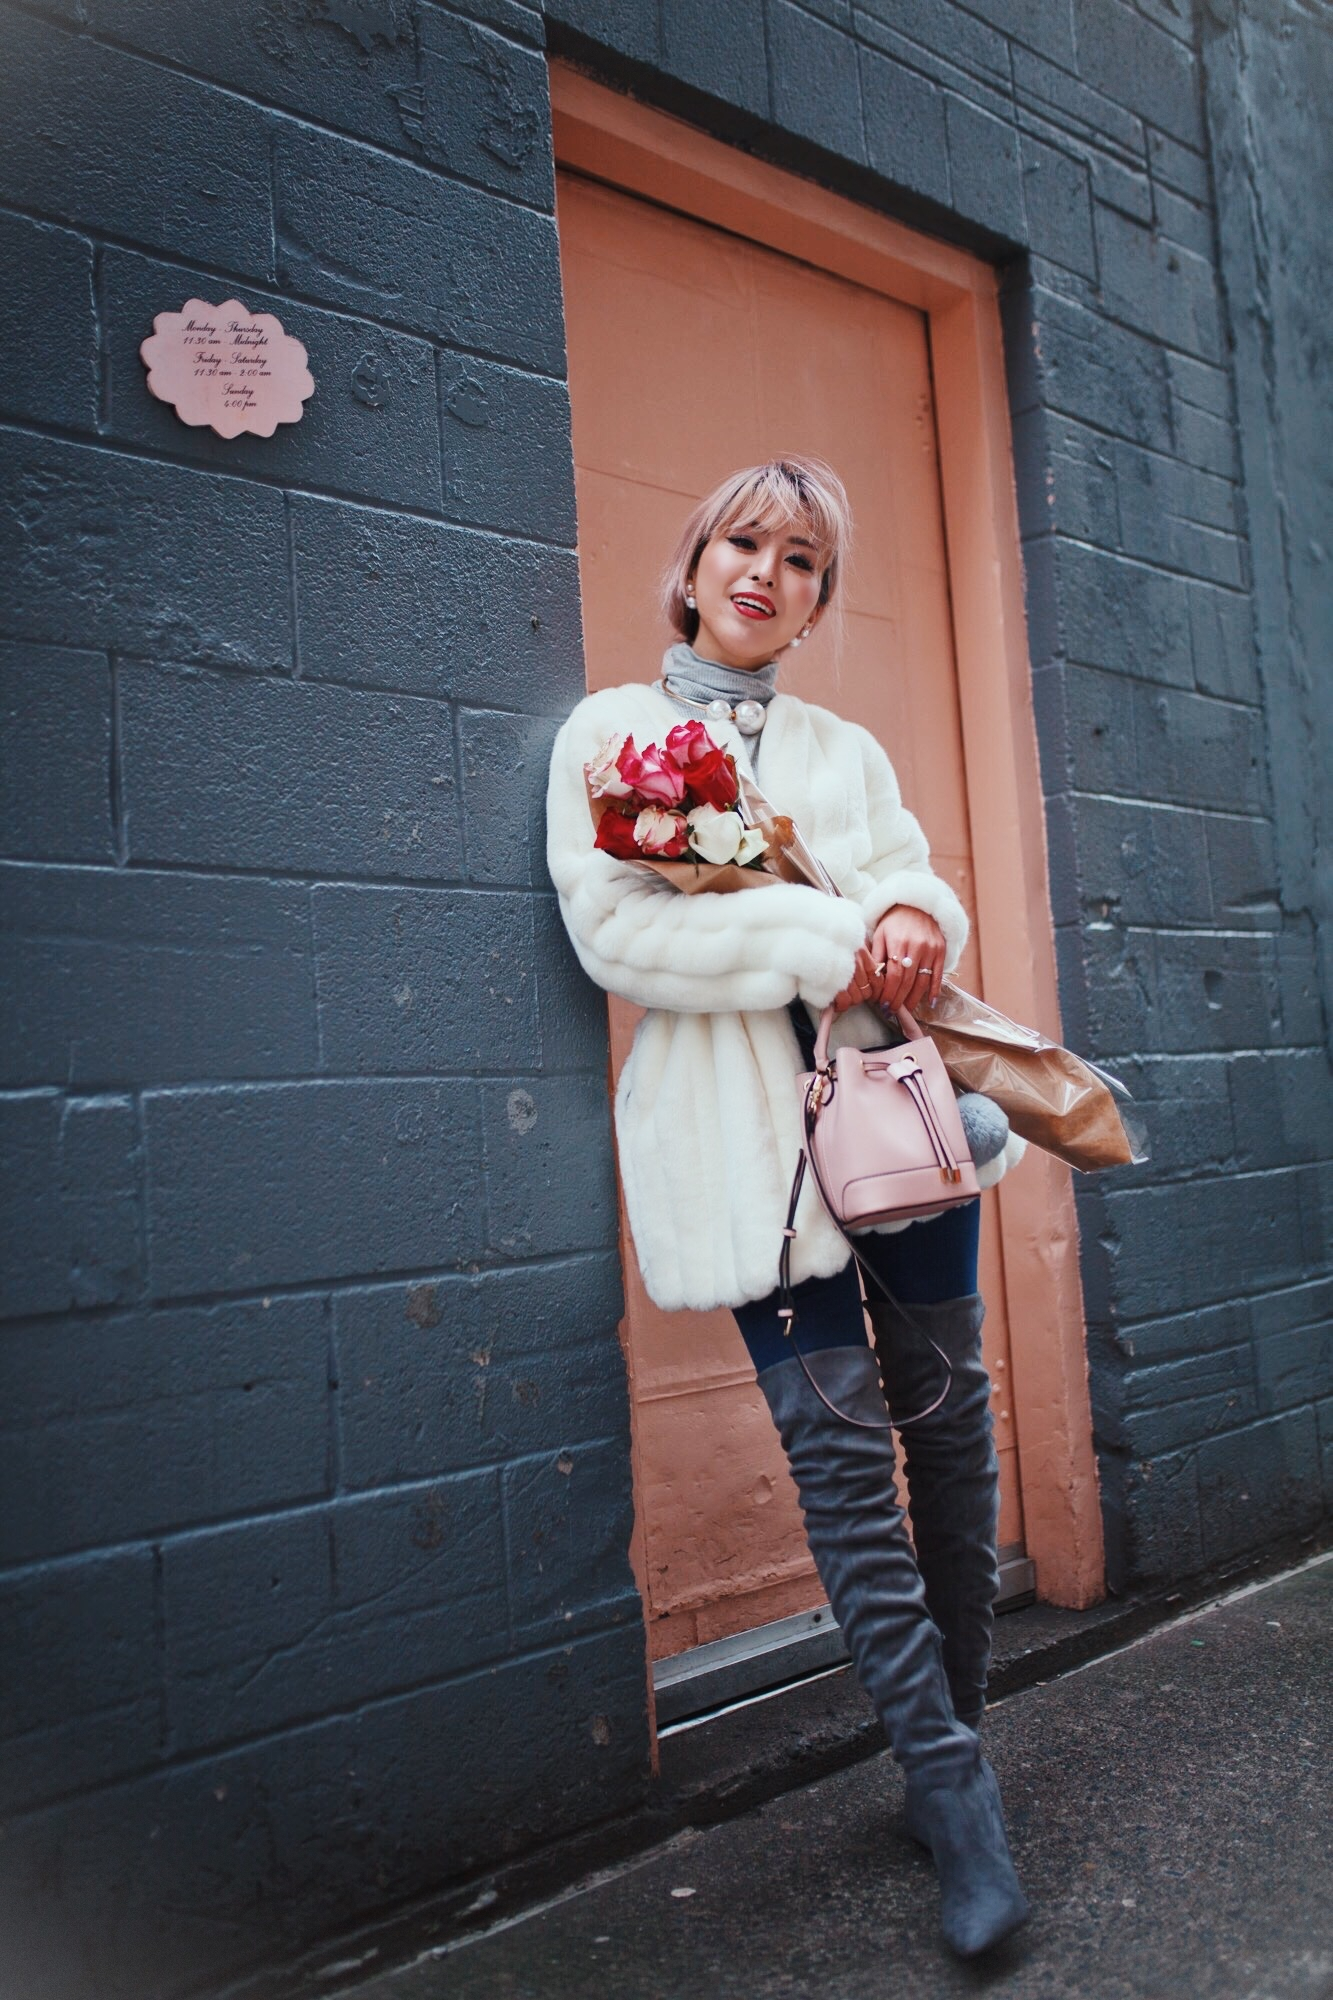 H&M Gray Turtleneck Sweater-ASOS high waisted skinny jean-EGO Grey Over the Knee Boots-While Faux Fur Coat-Forever 21 Pearl Belt & Pink Mini Basket Bag-Chanel Ribbon Hair-Valentine's Day-Rose bouquet-Pink Hair-Japanese-Seattle Style Fashion Blogger-AikA's Love Closet 15